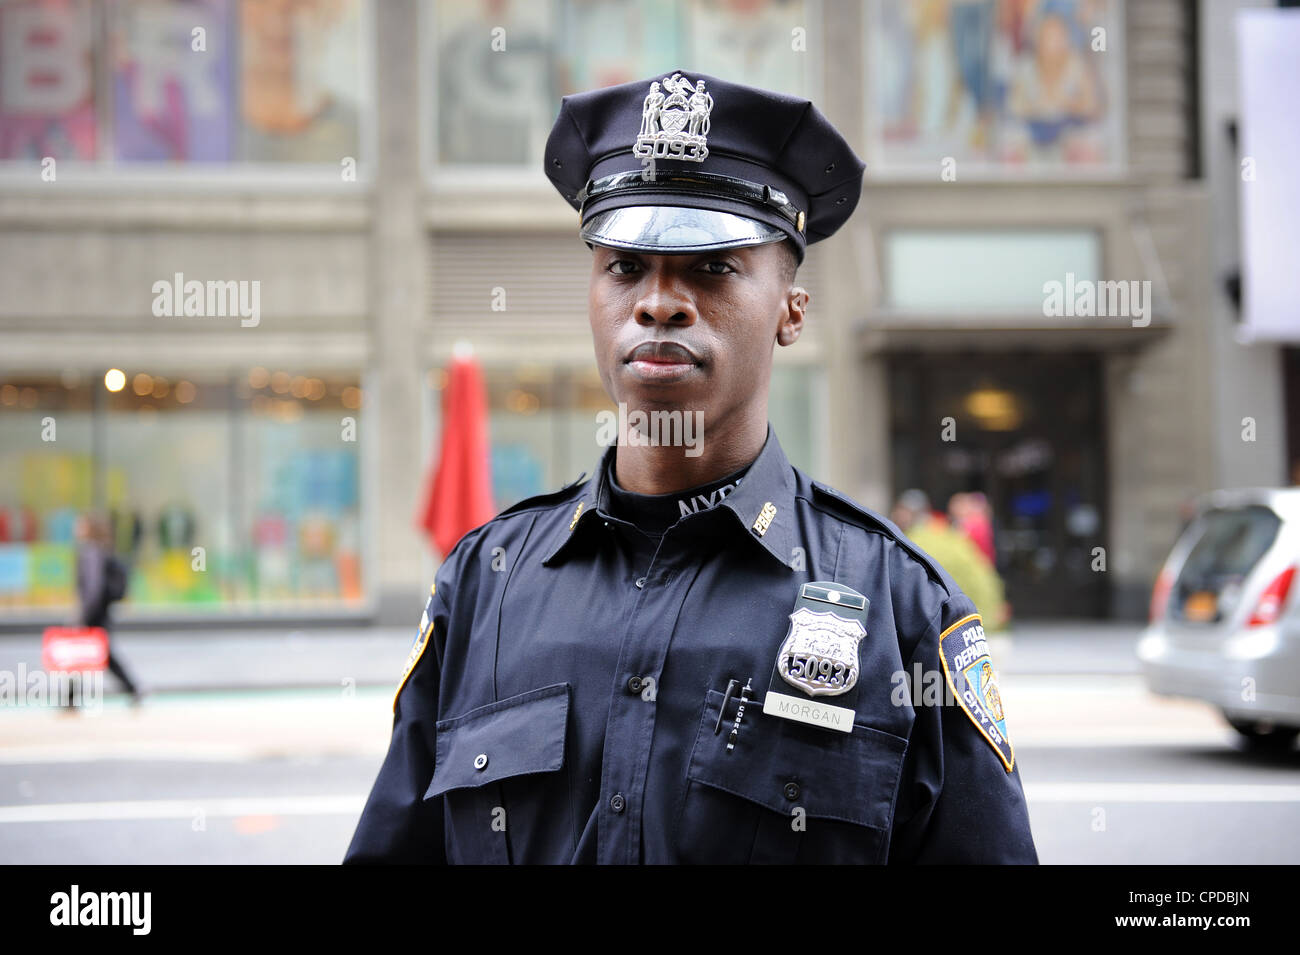 NYPD Police officer in Times Square, New York - Stock Image